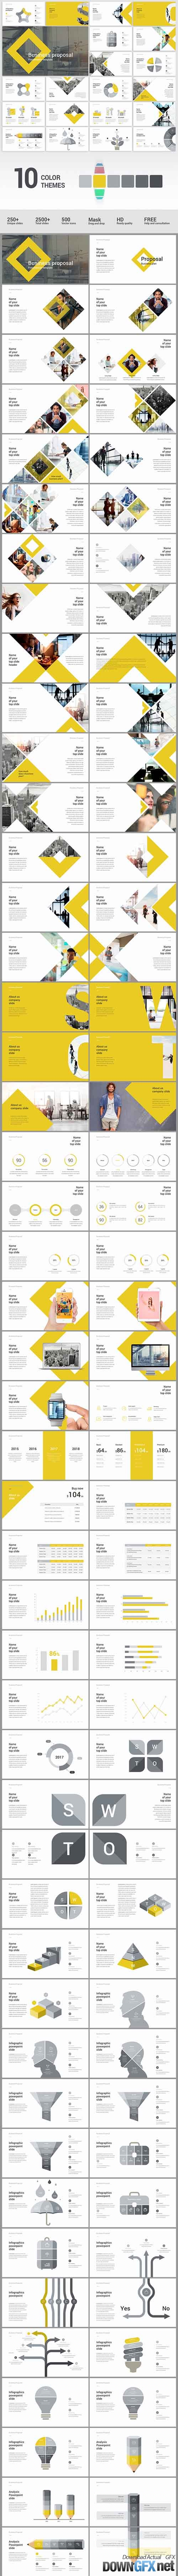 Business Proposal Powerpoint Template 20239379